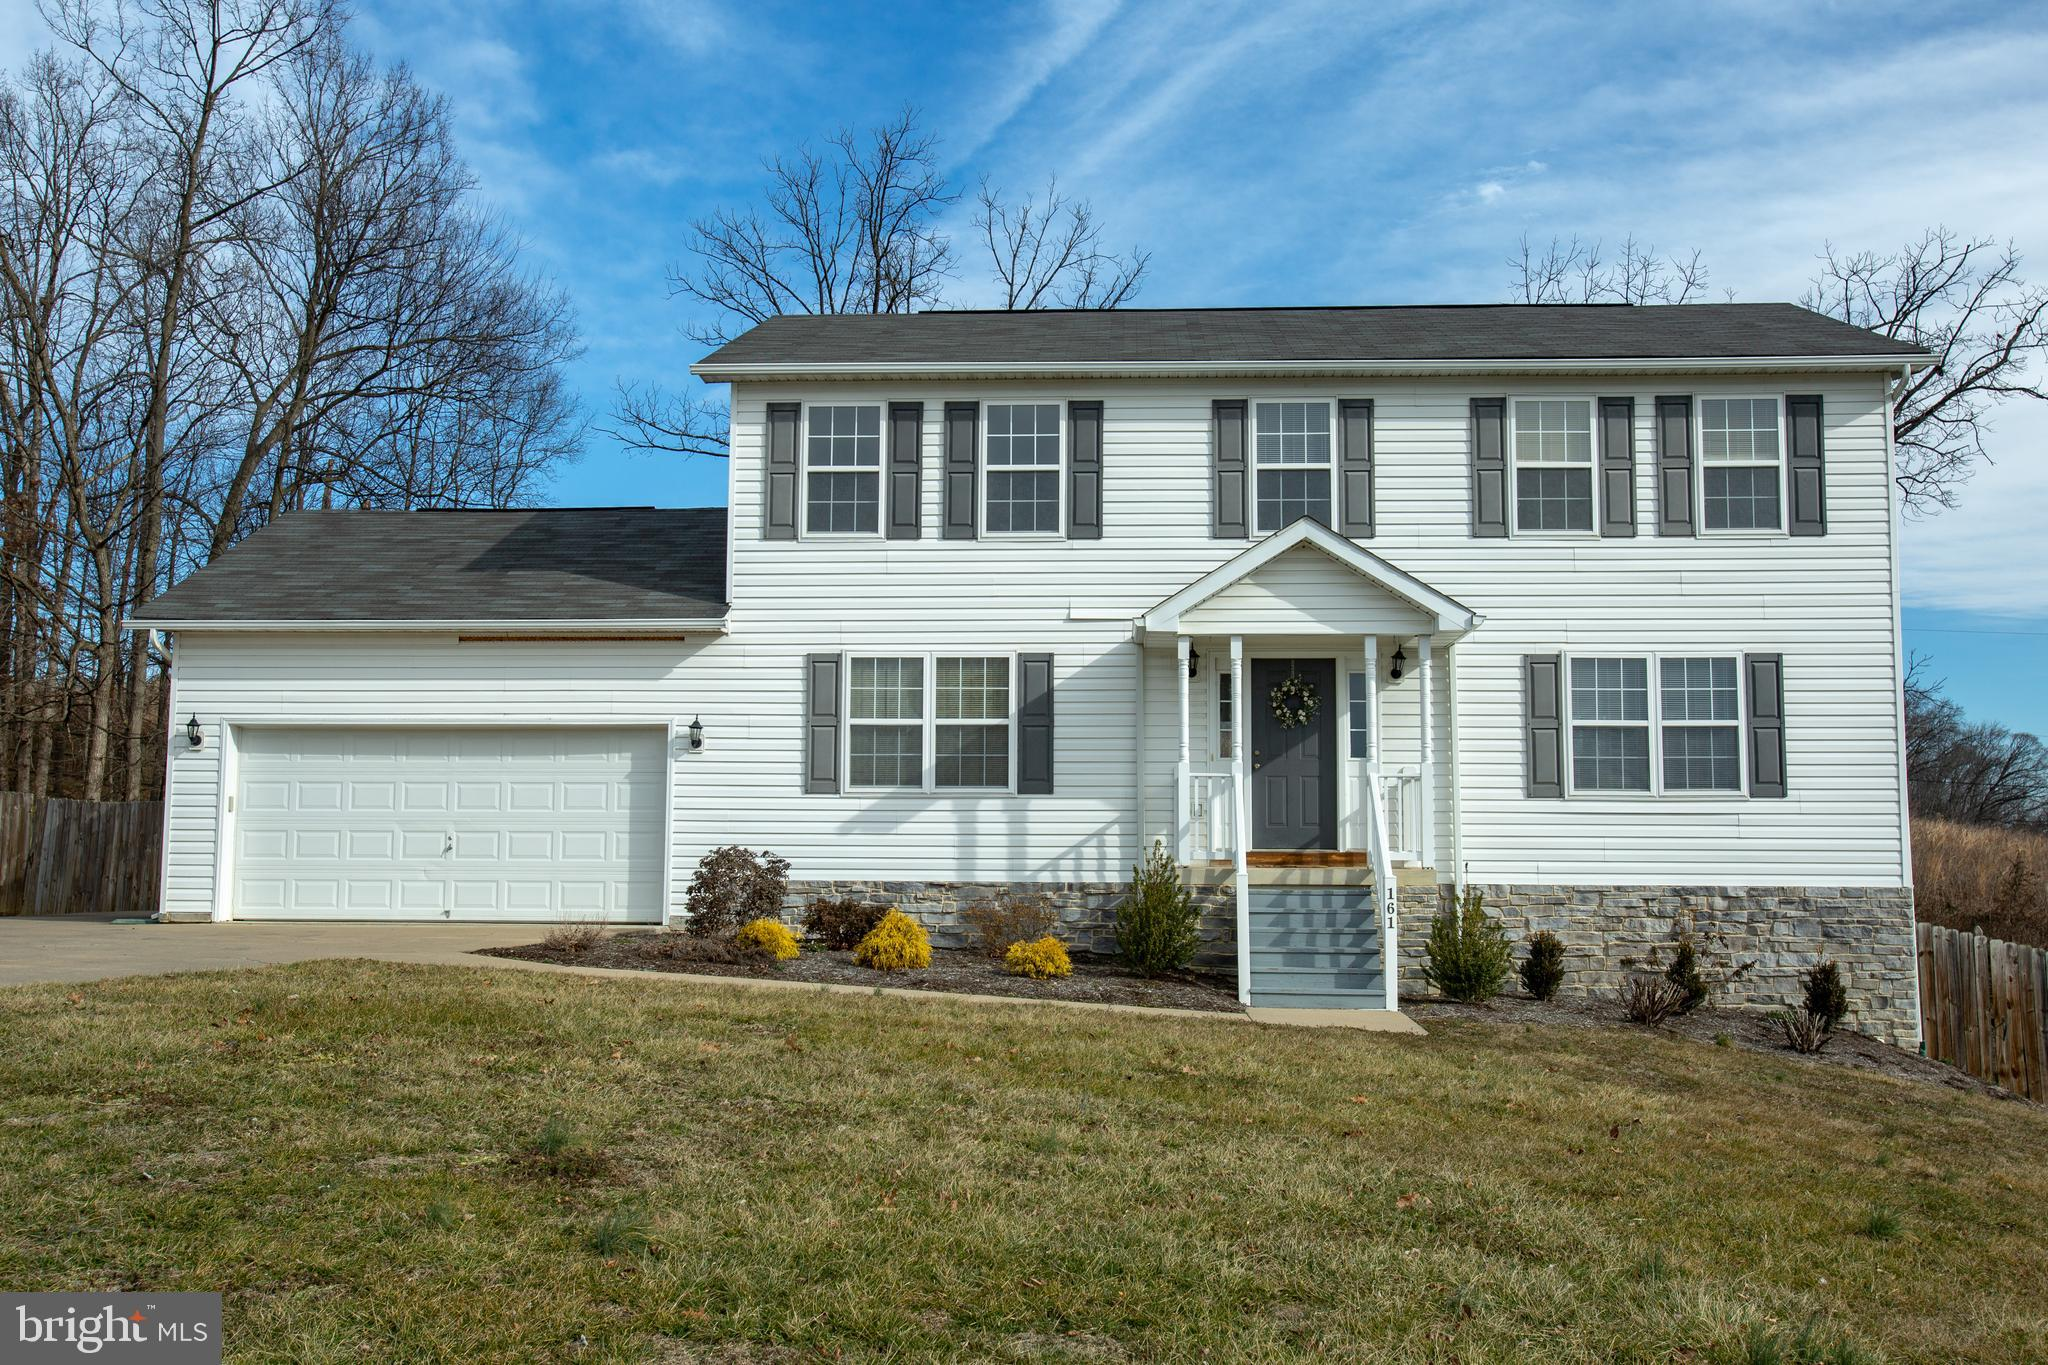 161 BLACK OAK DRIVE, MAURERTOWN, VA 22644